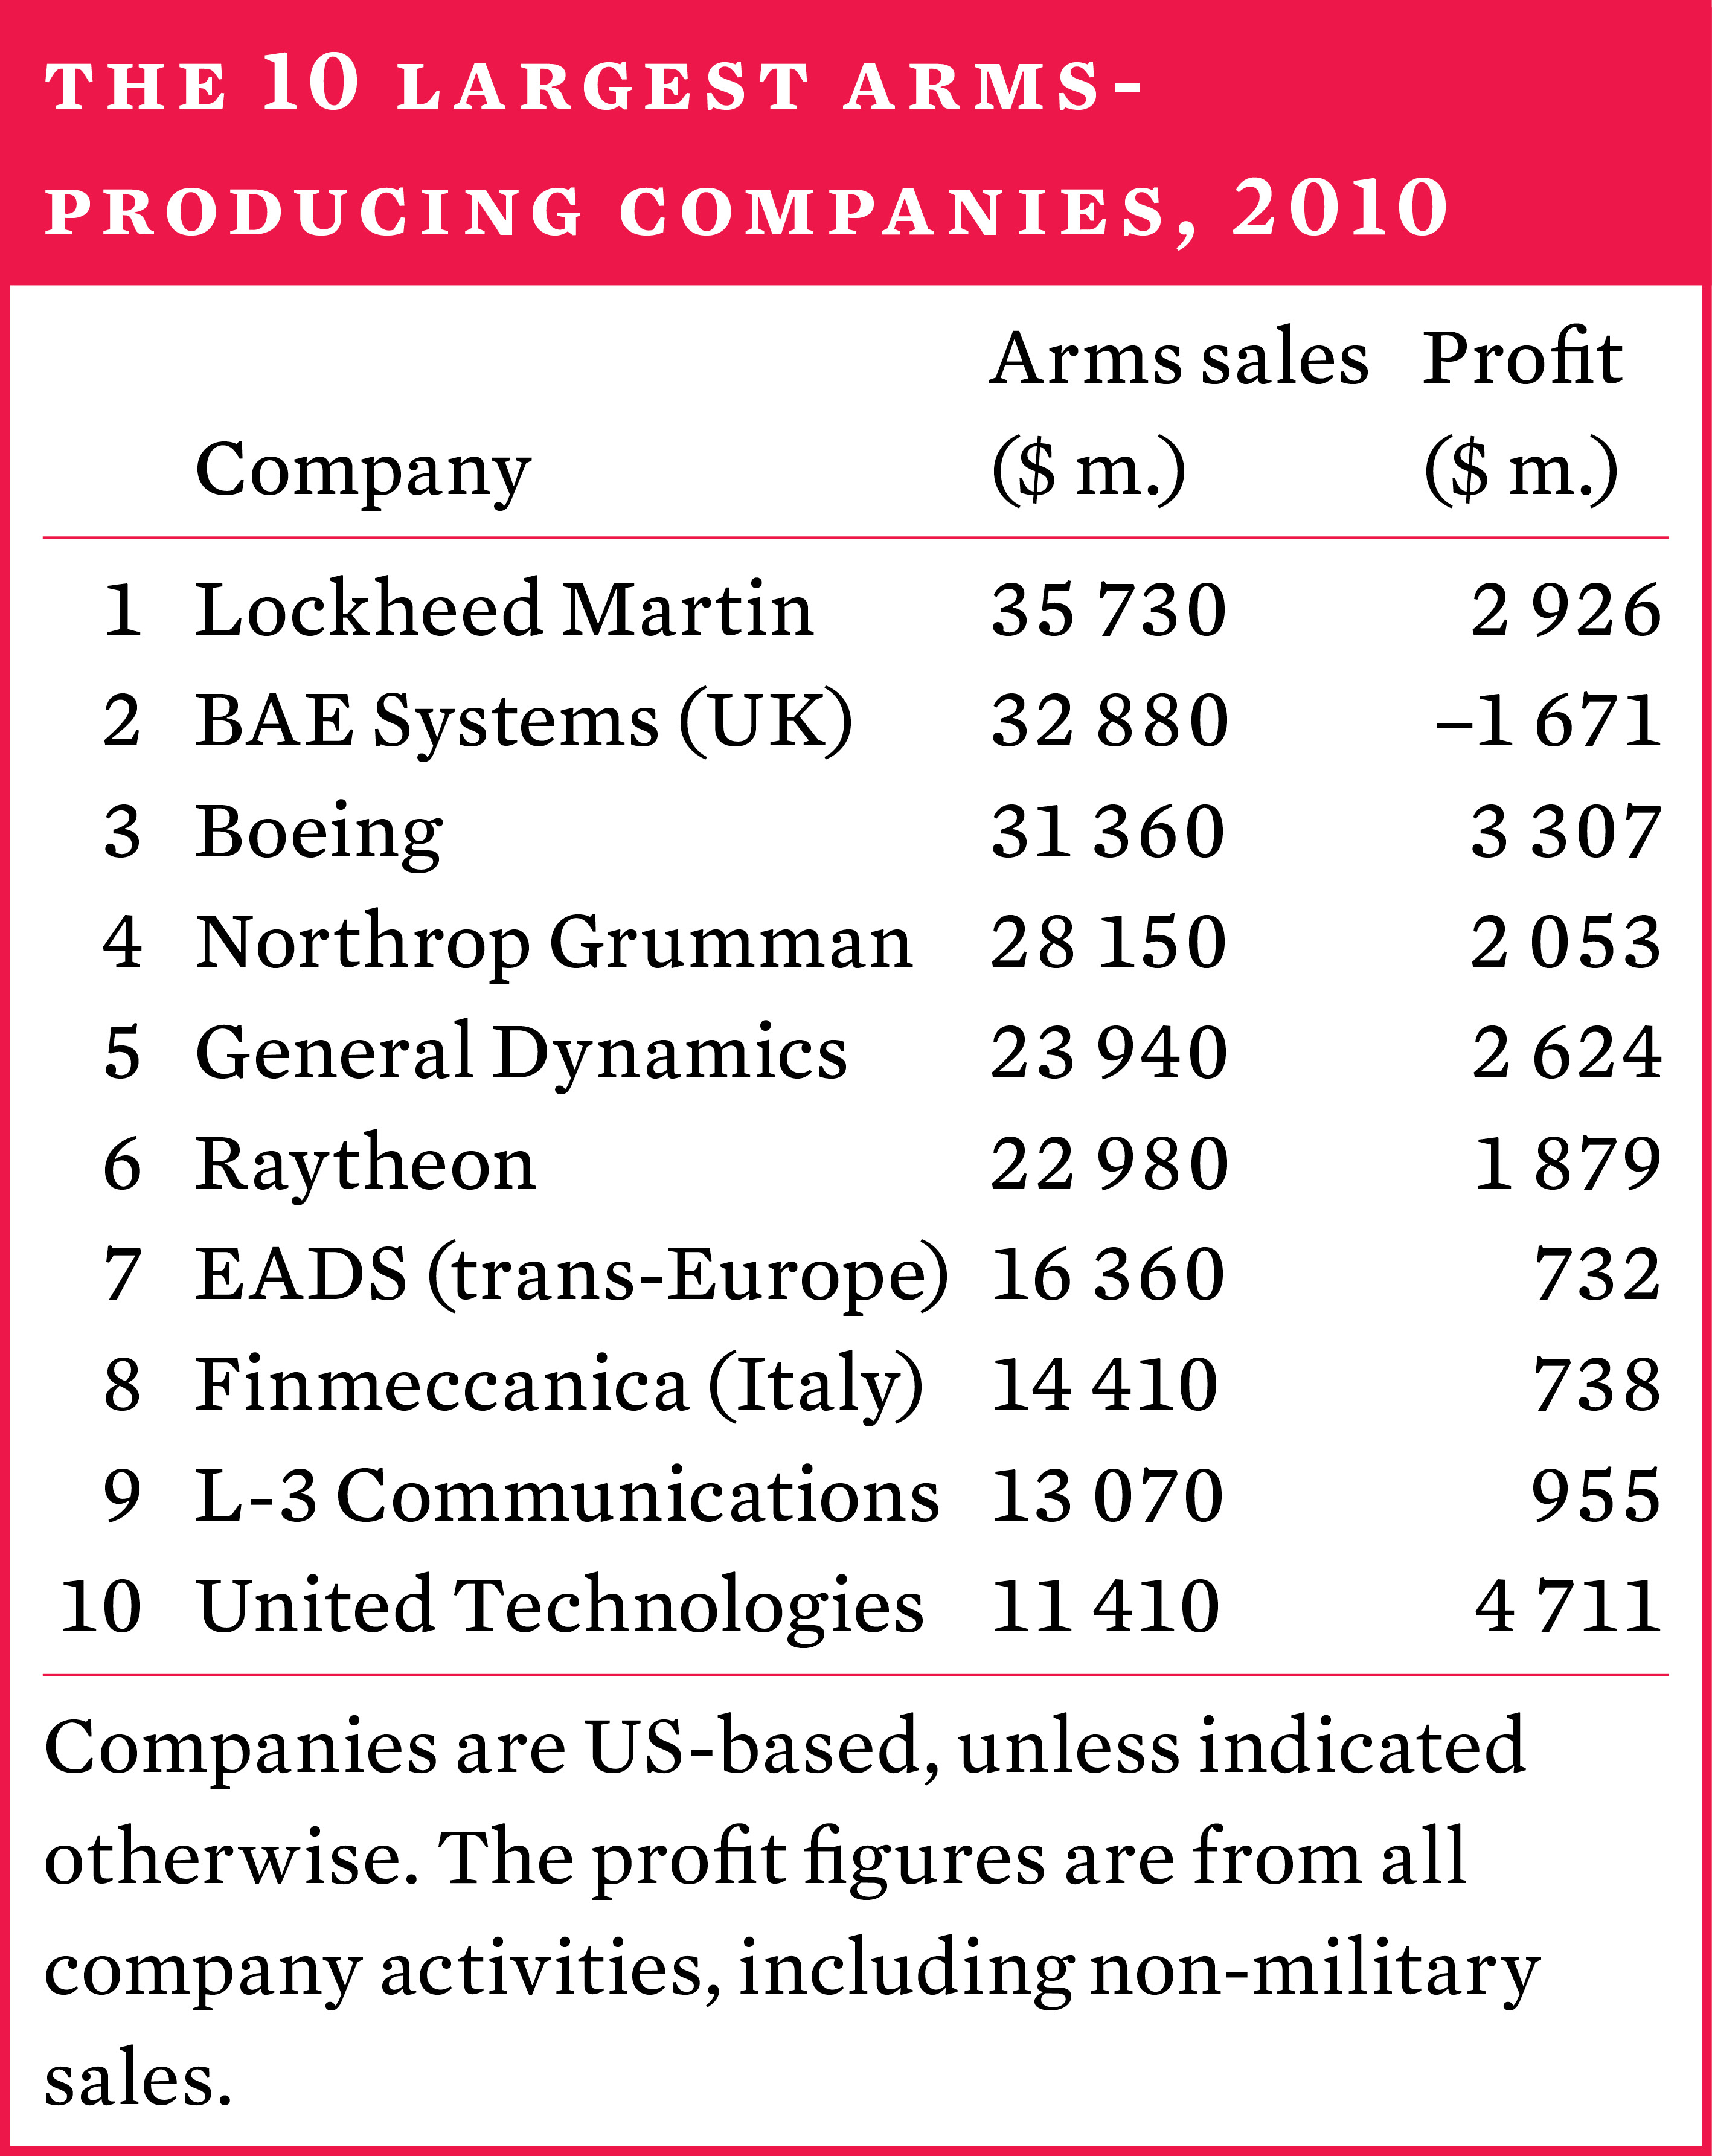 The 10 largest arms-producing companies, 2010